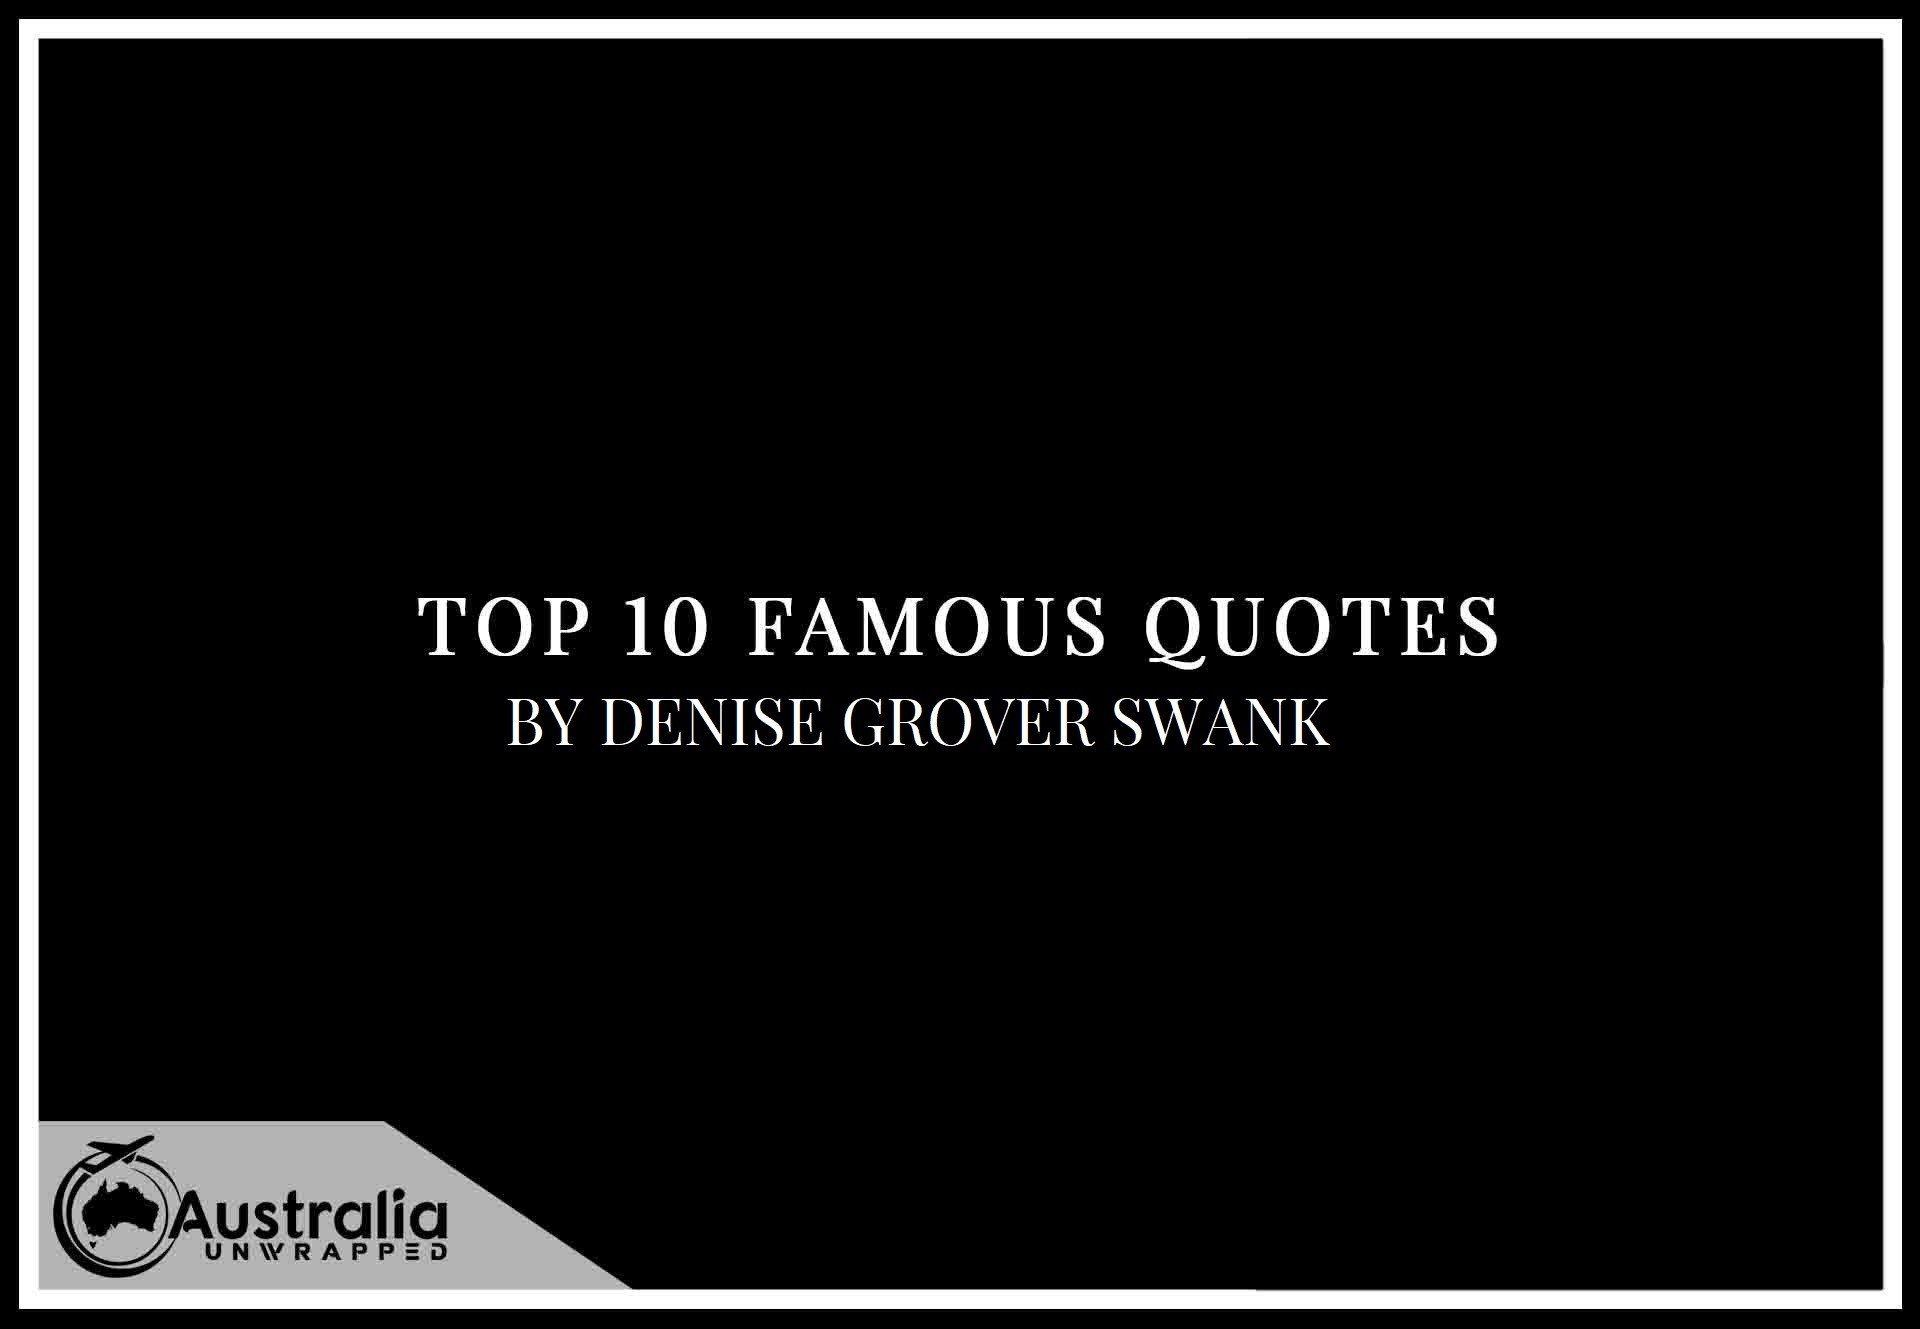 Top 10 Famous Quotes by Author Denise Grover Swank